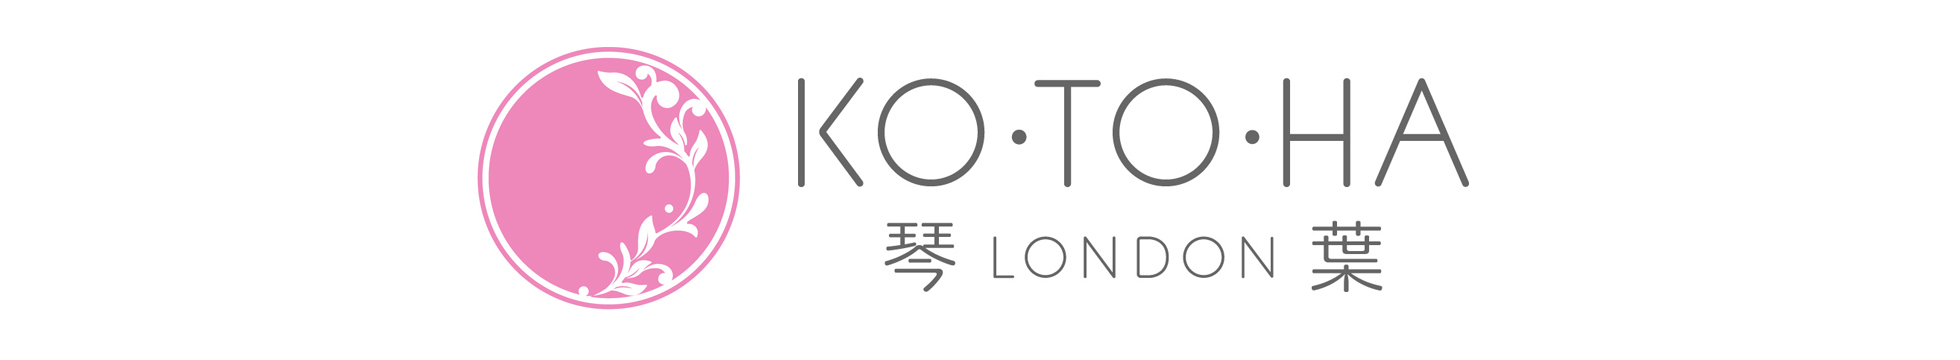 琴KOTOHA葉 Cosmetics London